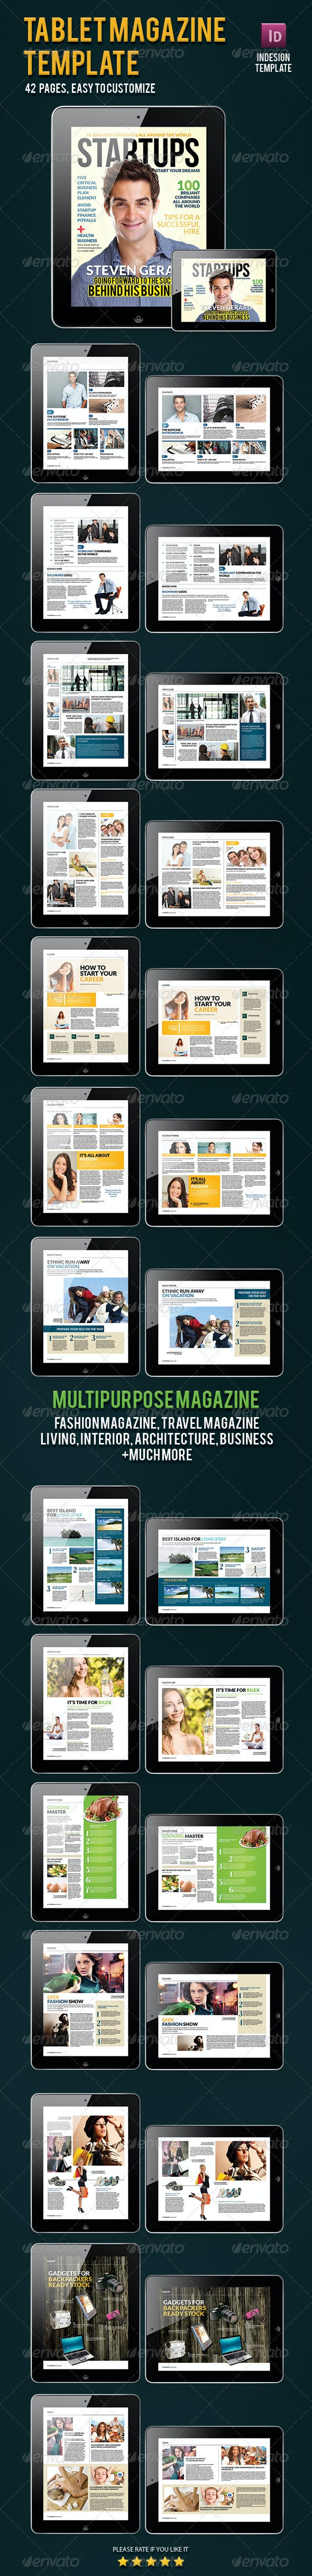 Magazine Template for Tablet - ePublishing